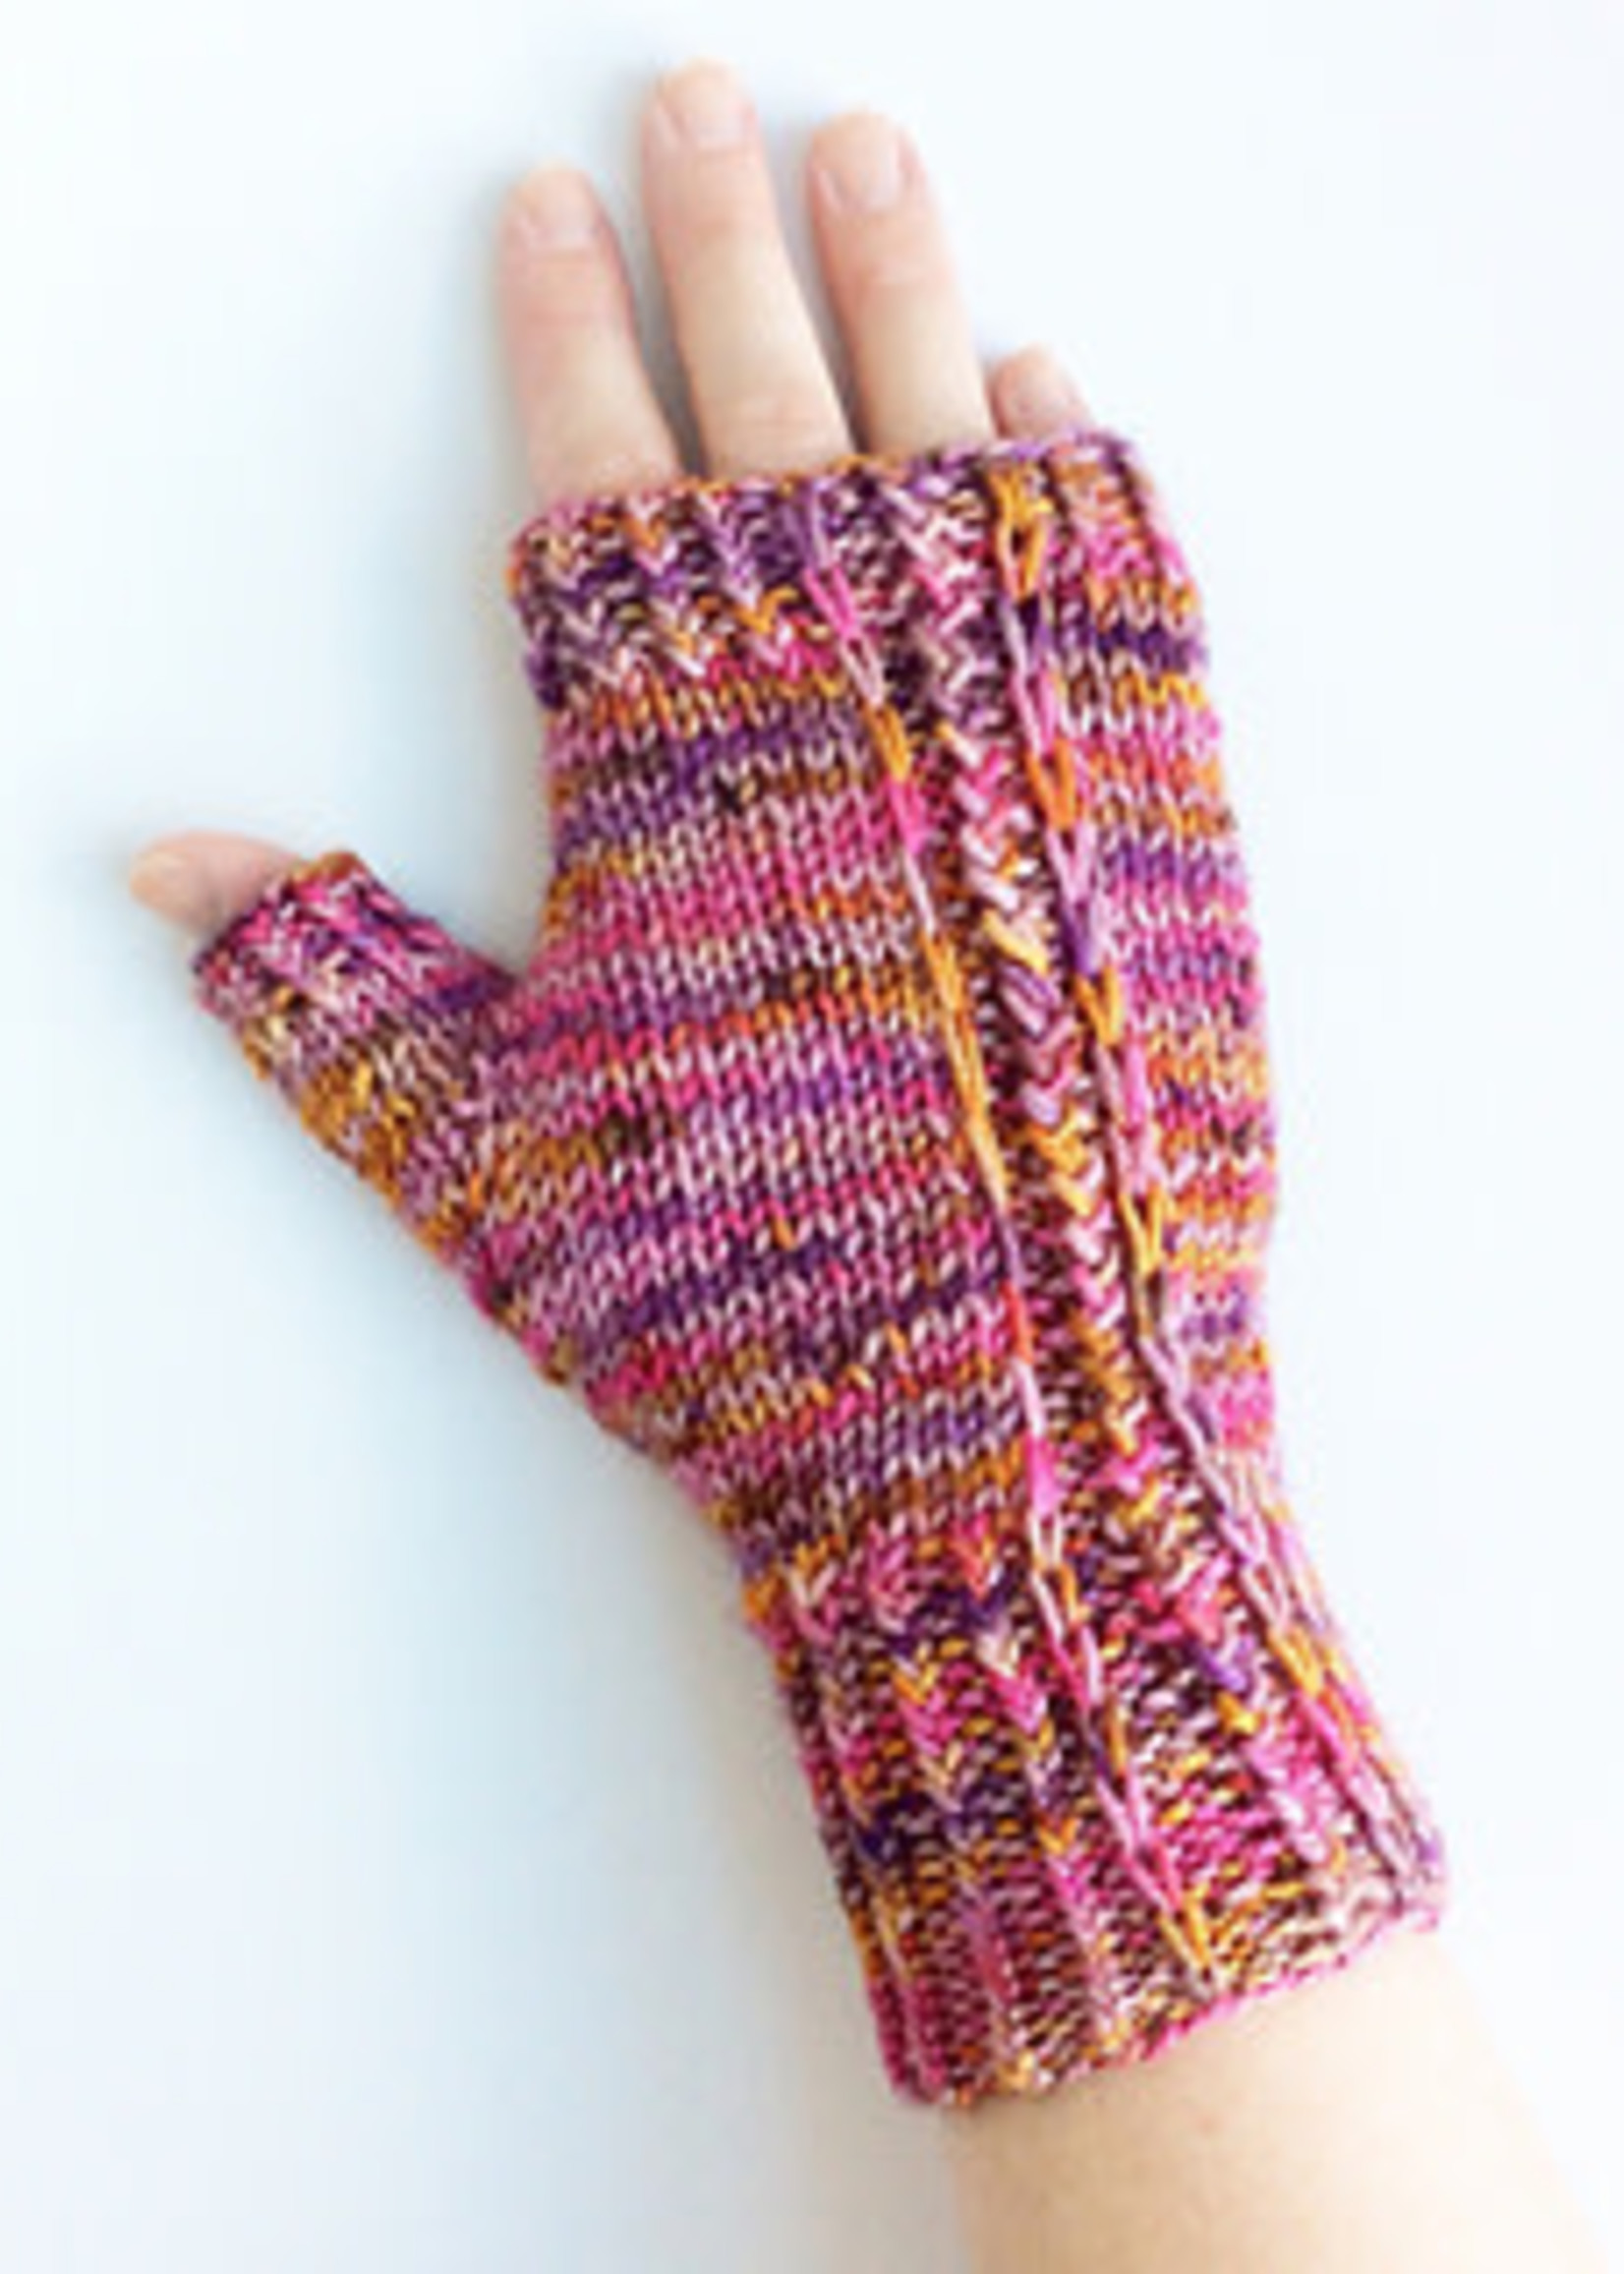 Knox Mountain Knit Co. Knox Mountain Knit Co. - Traders Cove Mitts